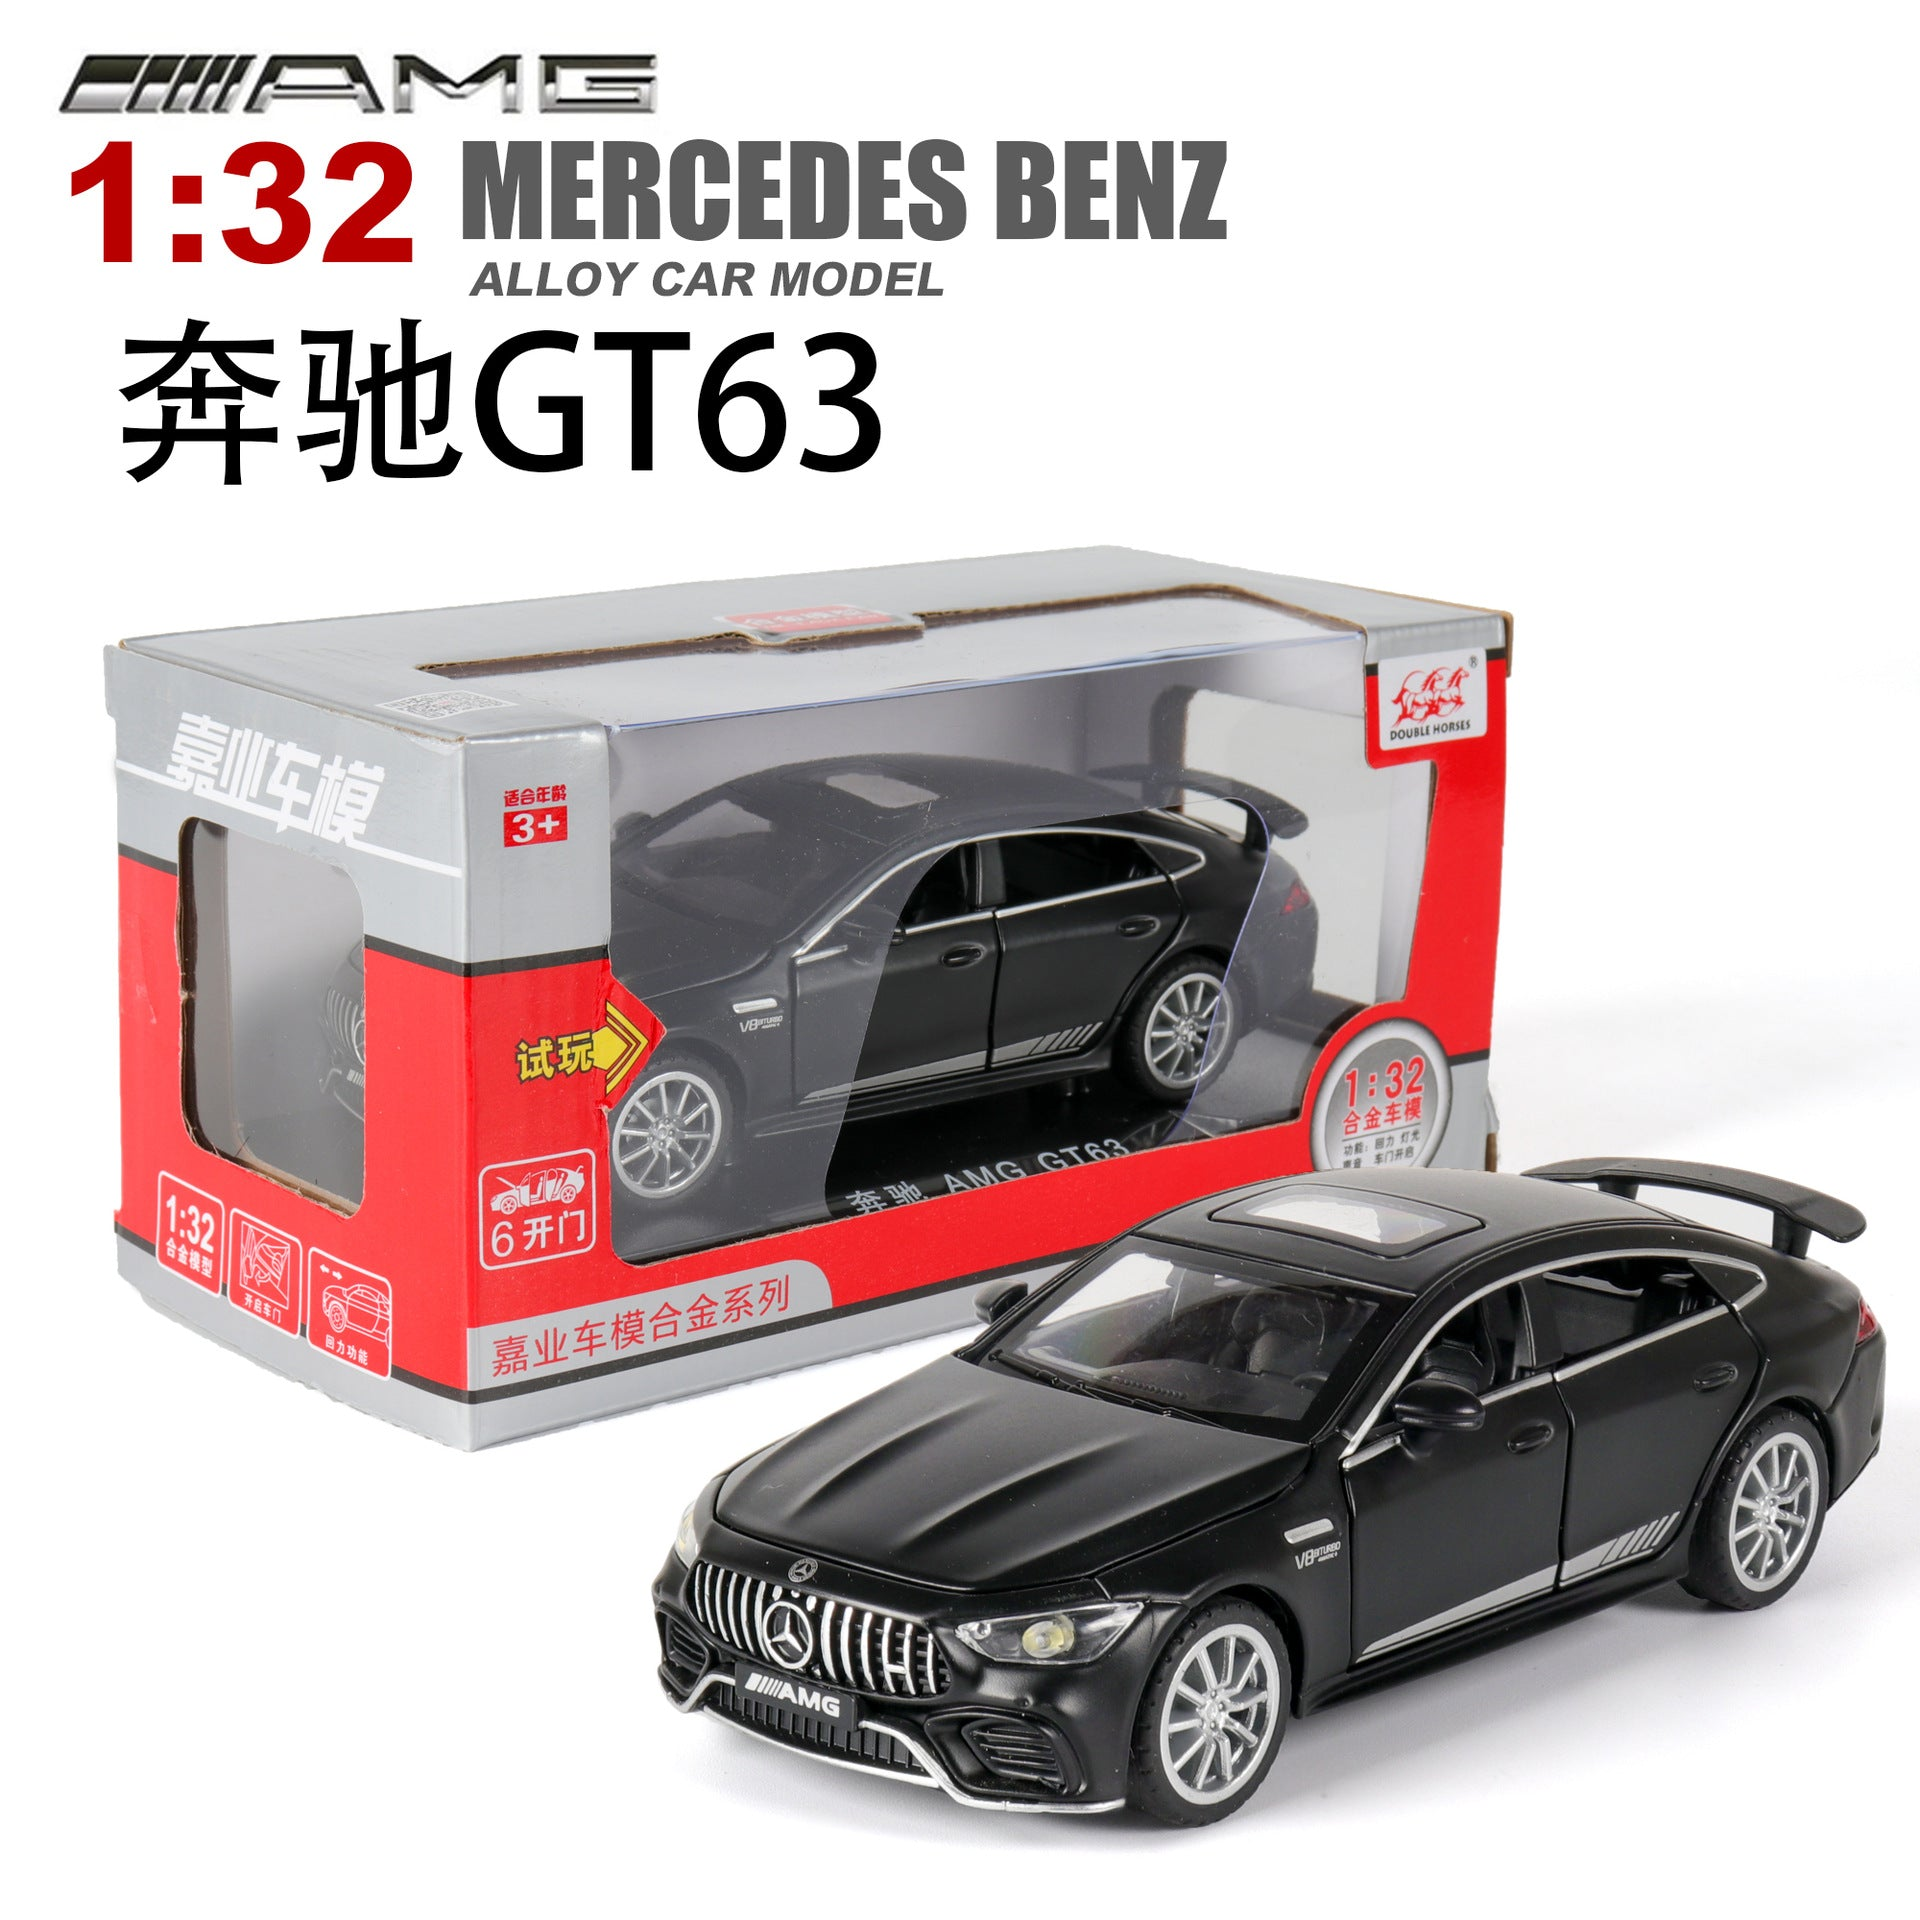 1:32 Simulation Racing Car Model Light Sound Effect Doors Open Alloy Pull Back Auto Toy Gift Collection black